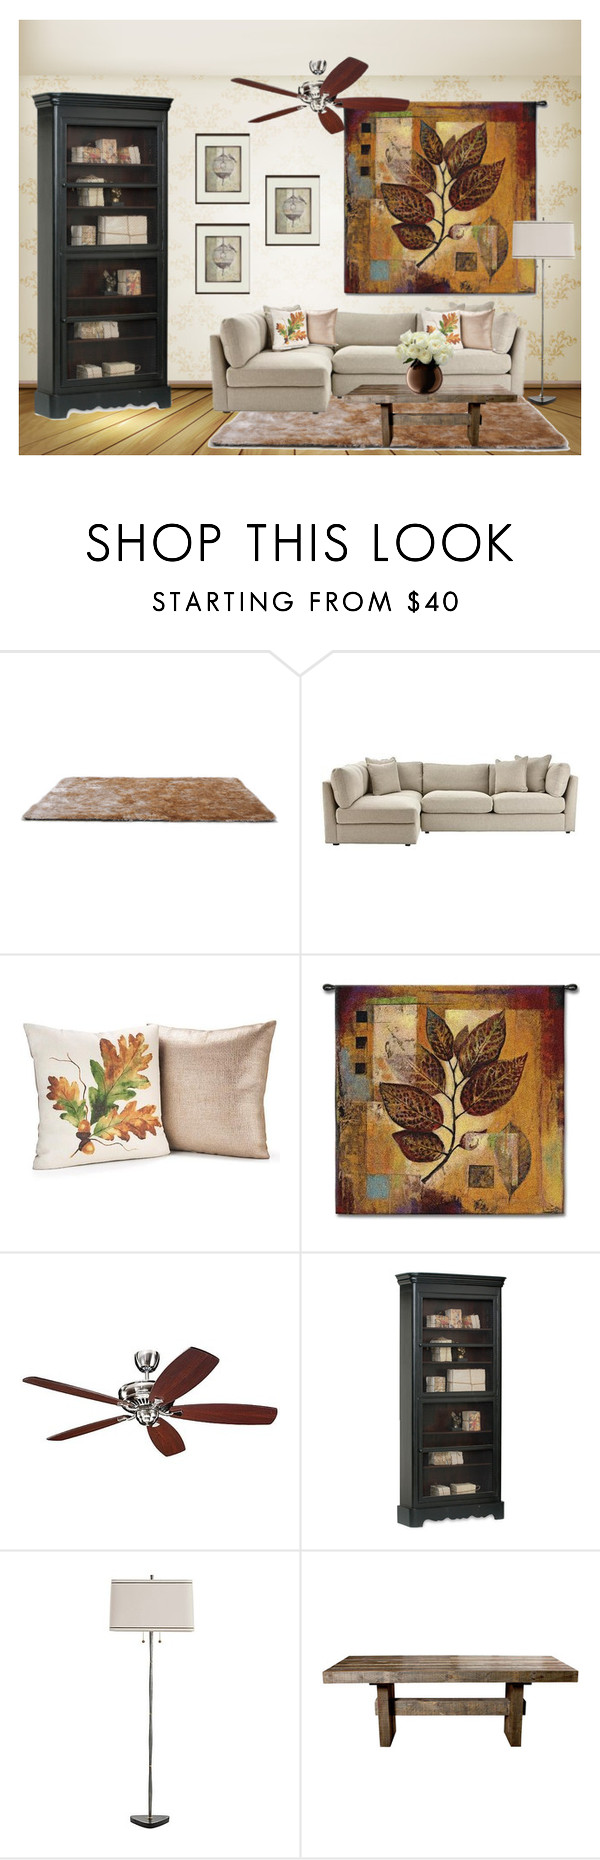 """""""Home🏡"""" by april262005-paris ❤ liked on Polyvore featuring interior, interiors, interior design, home, home decor, interior decorating, Gold Sparrow, Home Decorators Collection, Avon and Arteriors"""